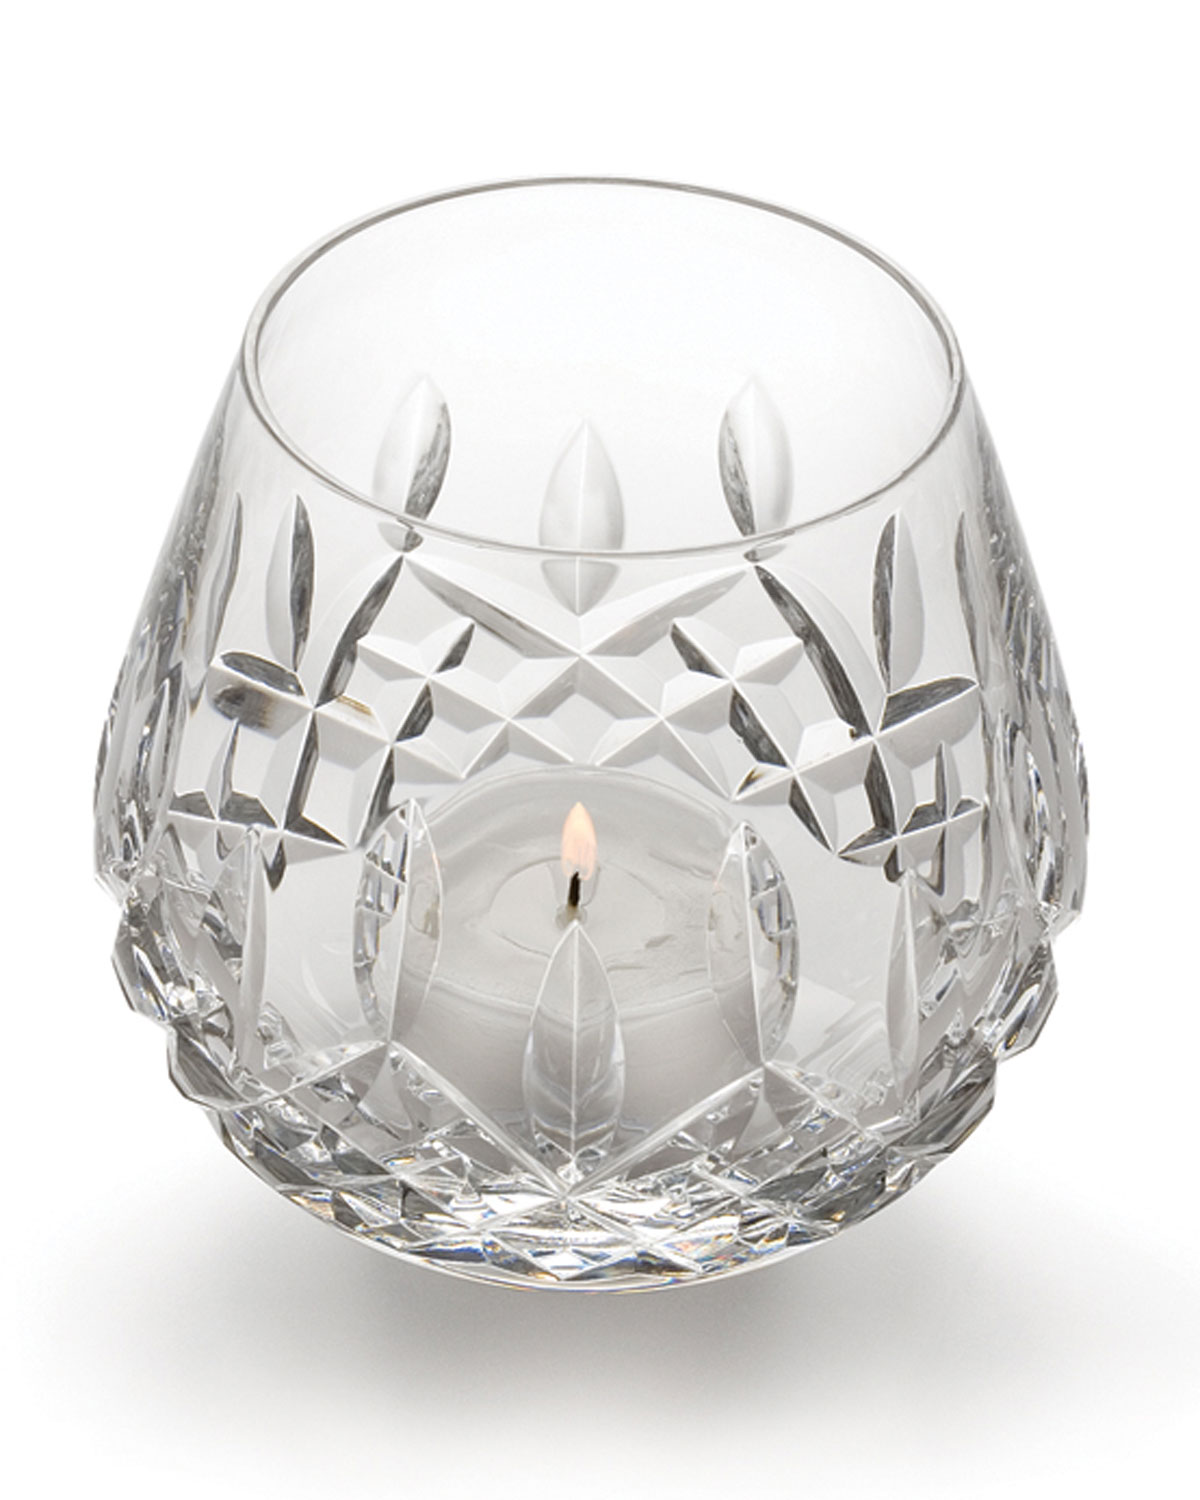 Waterford Crystal Votive Candle Holder Image Antique And Candle